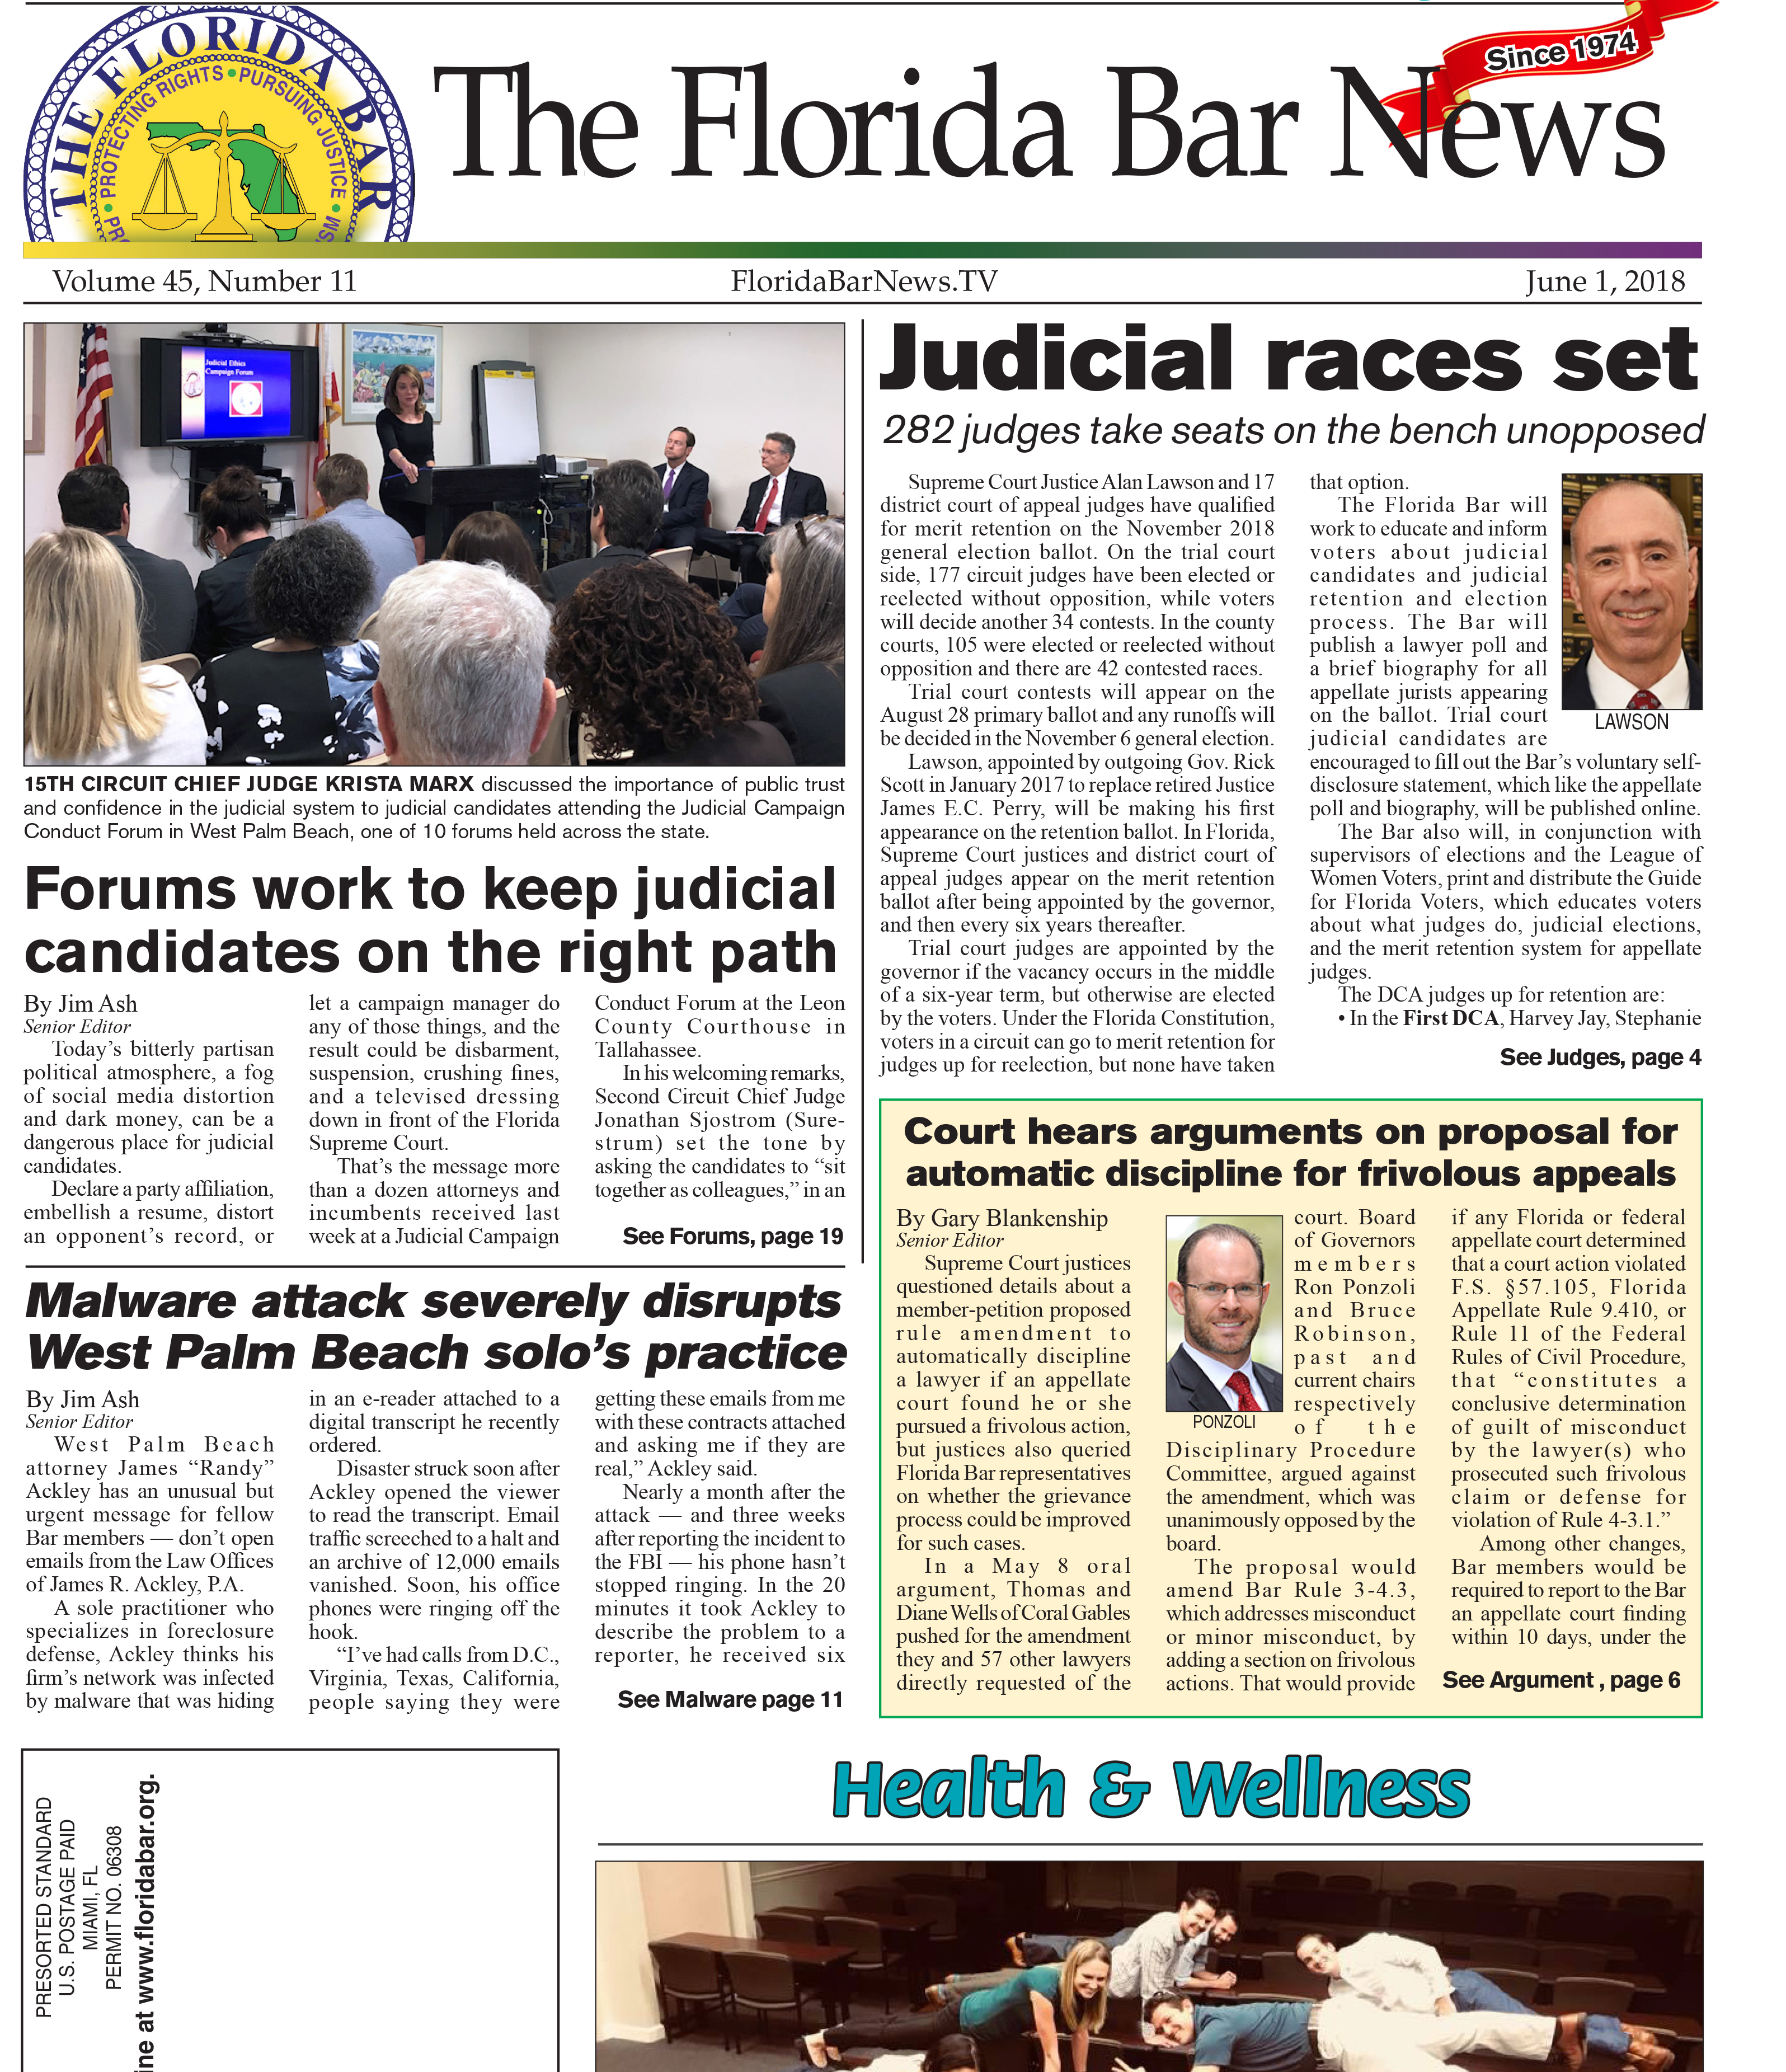 The June 1 Bar News includes: Judicial races being set, the Judicial Campaign Conduct forum and oral arguments on a proposed rule regarding frivolous appeals.